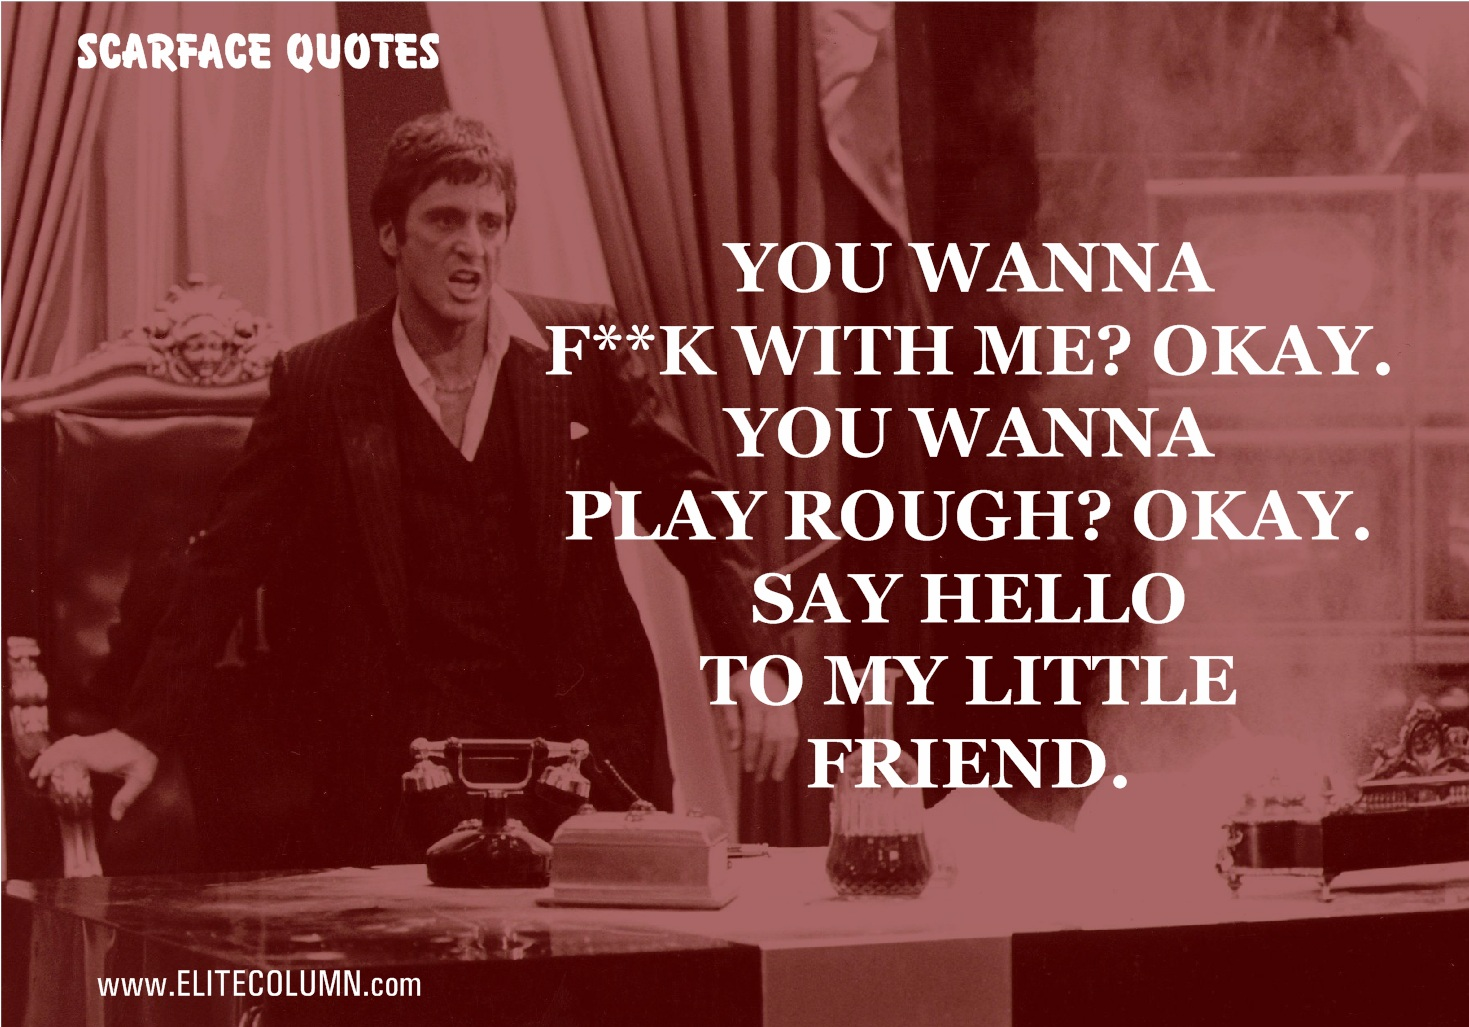 Scarface Quotes Scarface Quotes 1 | EliteColumn Scarface Quotes